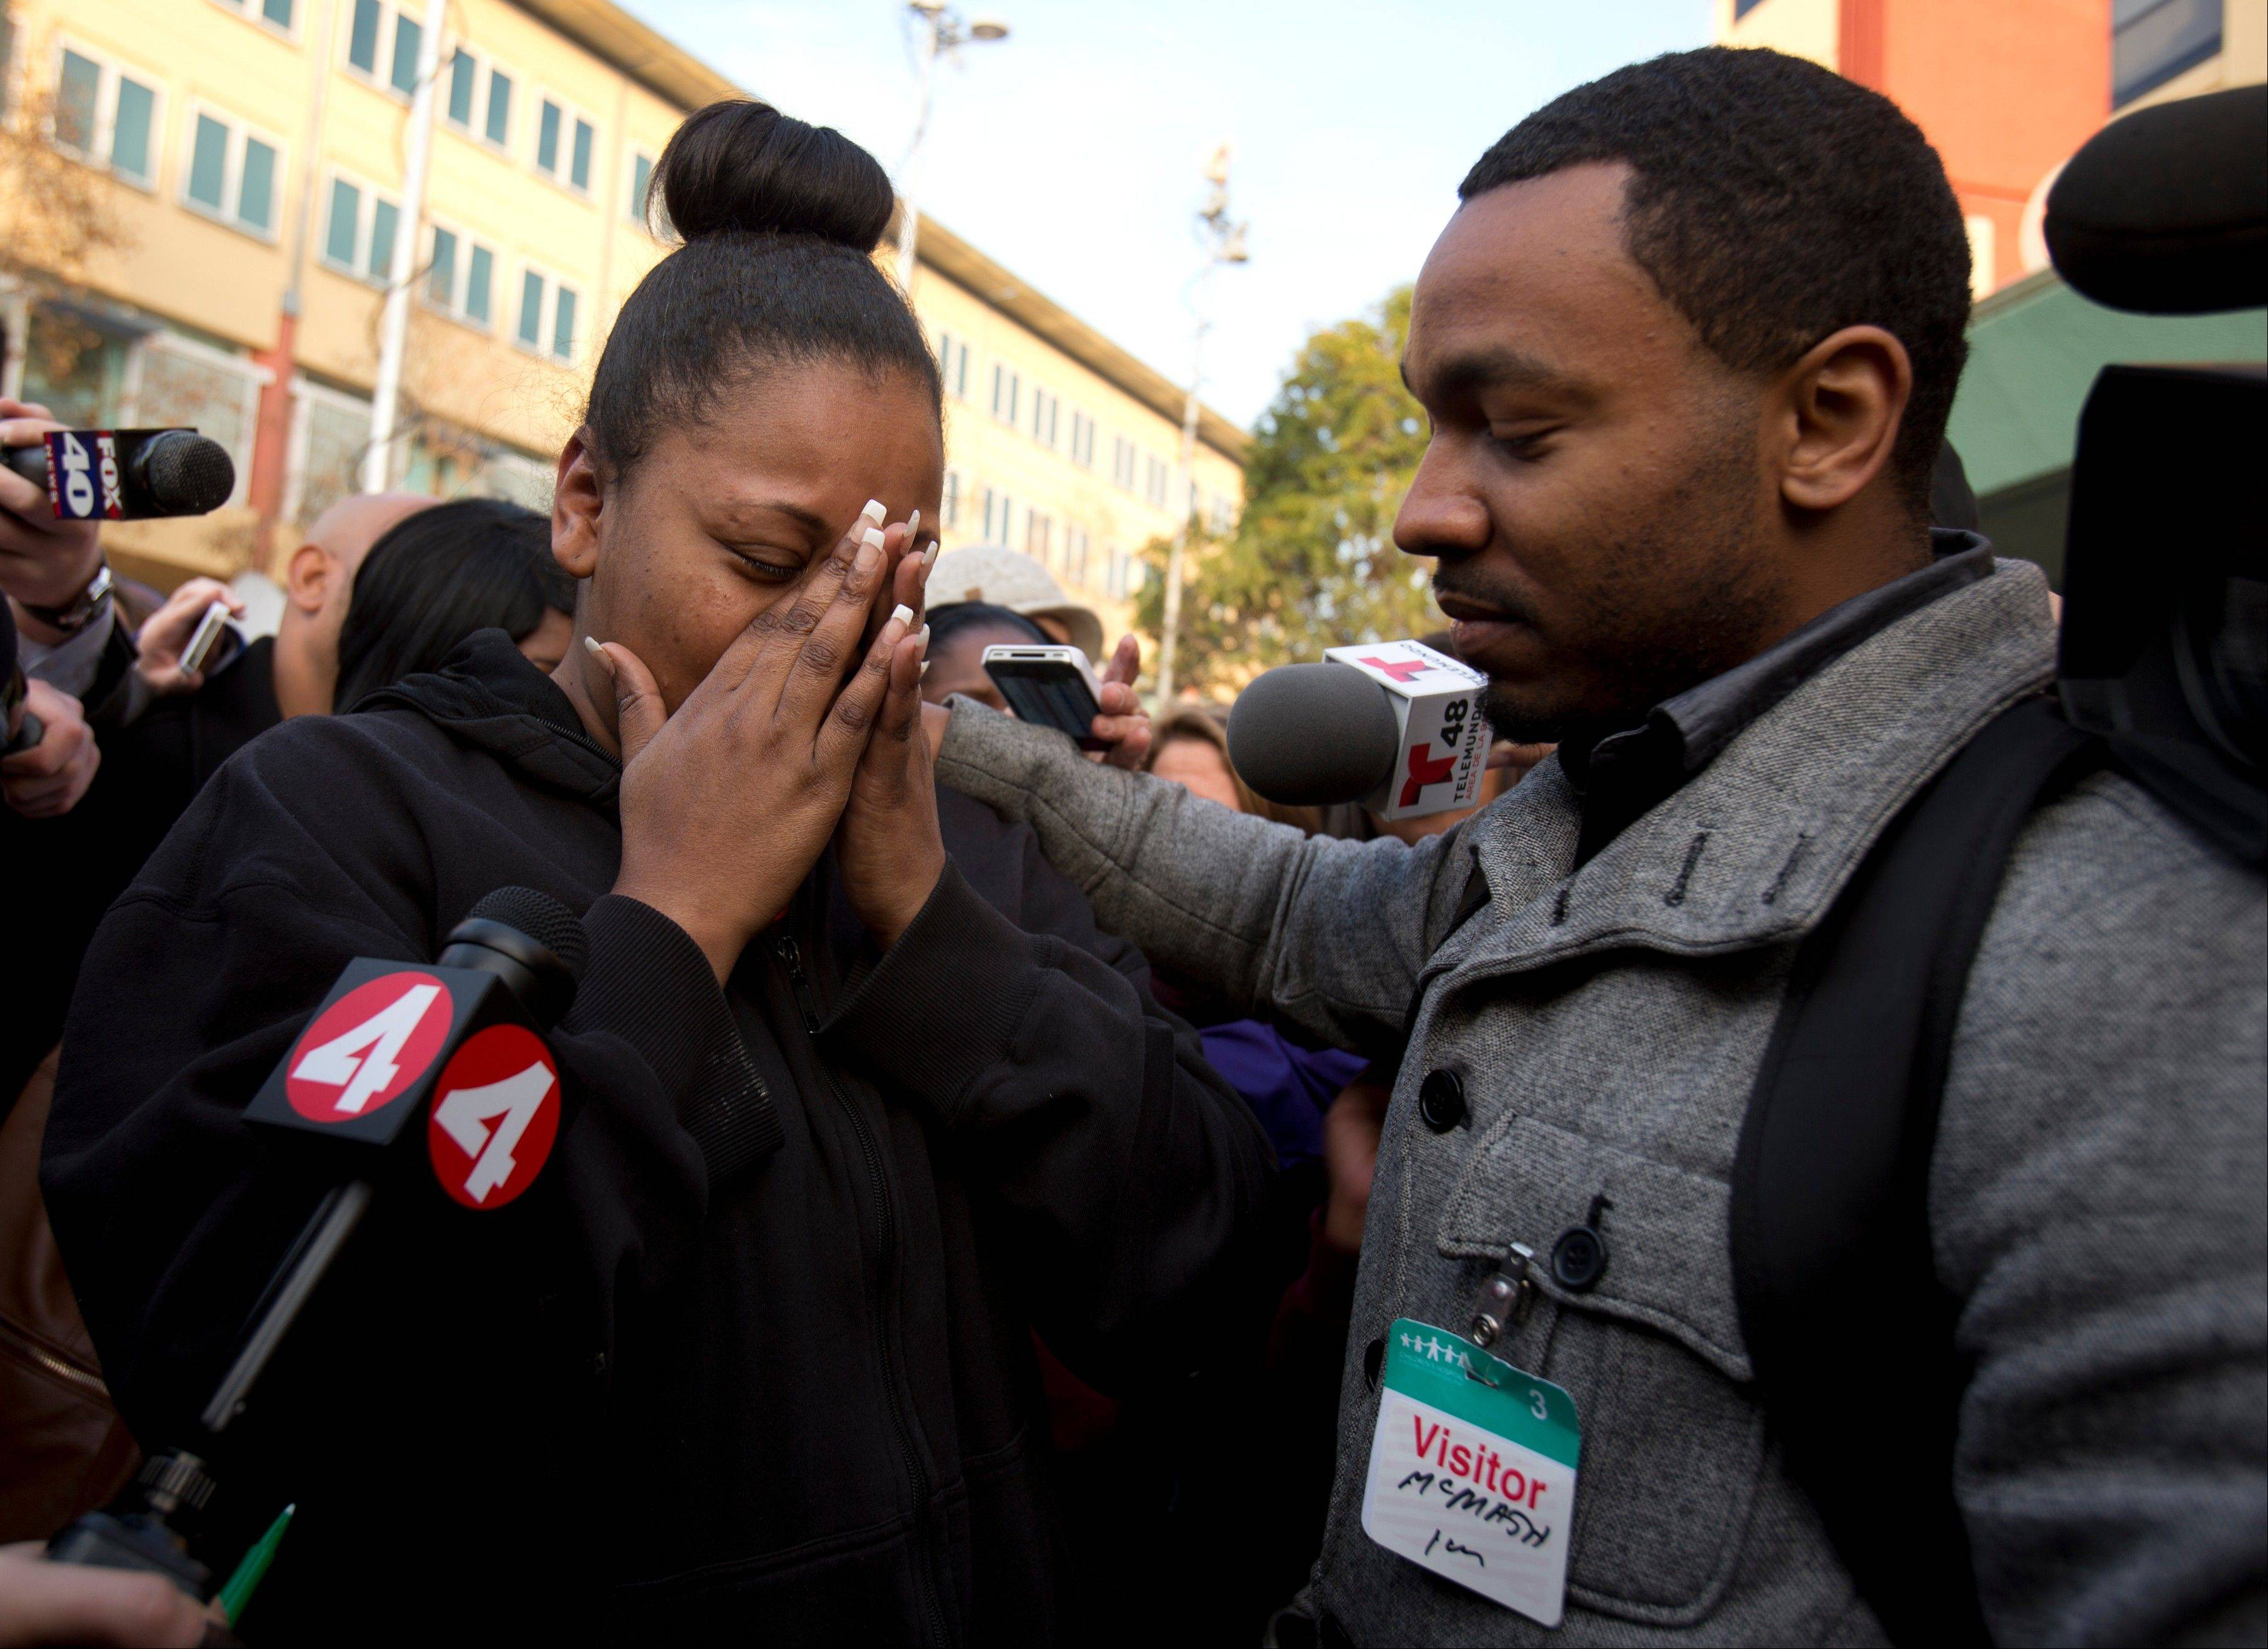 Nailah Winkfield, left, mother of 13-year-old Jahi McMath, is comforted by brother Omari Sealey as she talks to the media outside Children's Hospital Oakland, Monday in Oakland, Calif. McMath, who was declared brain dead after complications of a tonsillectomy, will now stay on a ventilator through Jan. 7.